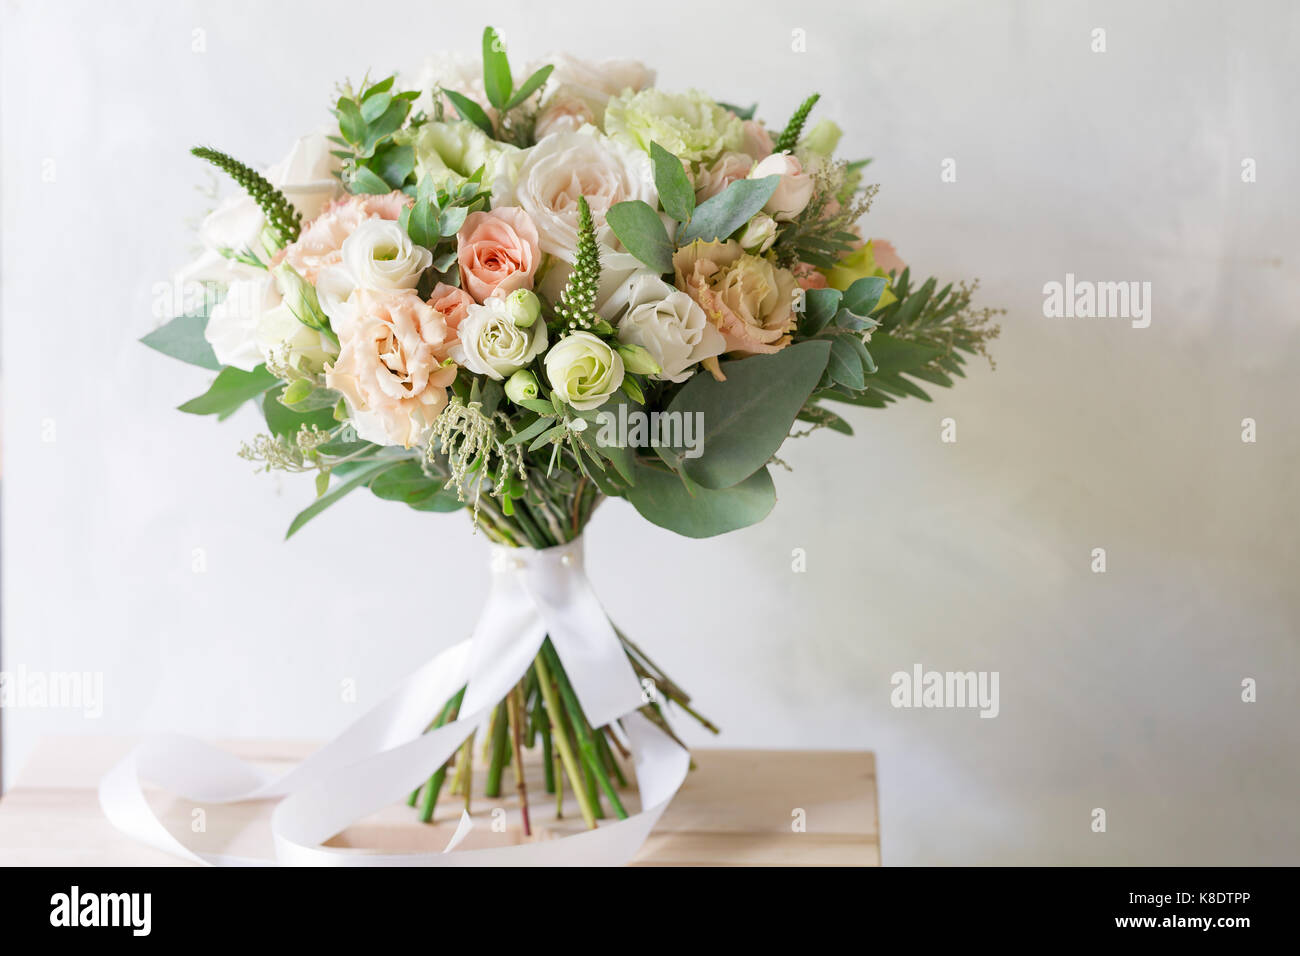 Bridal bouquet a simple bouquet of flowers and greens stock photo bridal bouquet a simple bouquet of flowers and greens izmirmasajfo